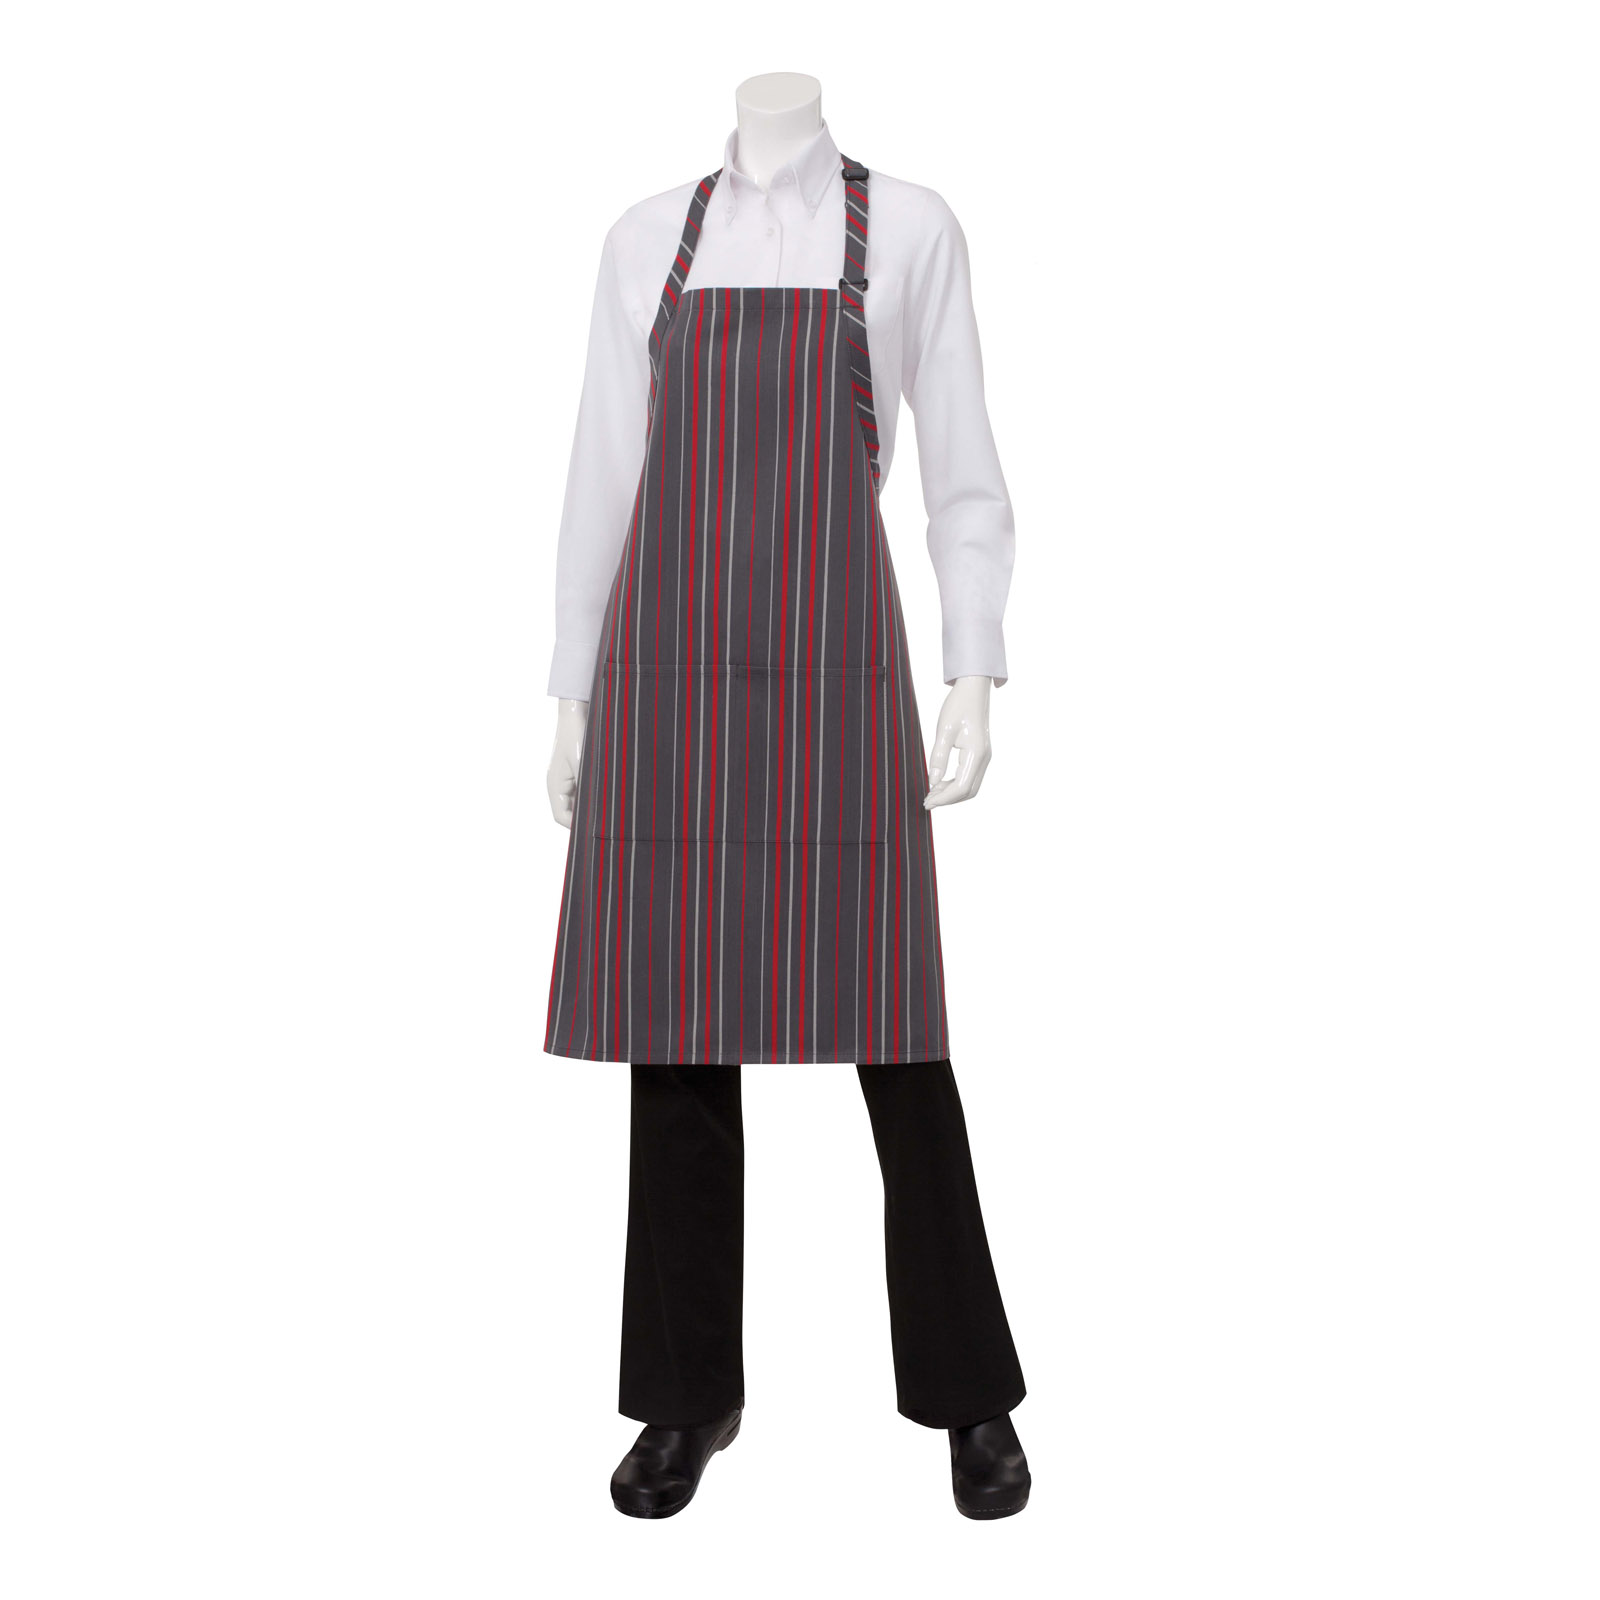 Chef Works A500GCR0 bib apron